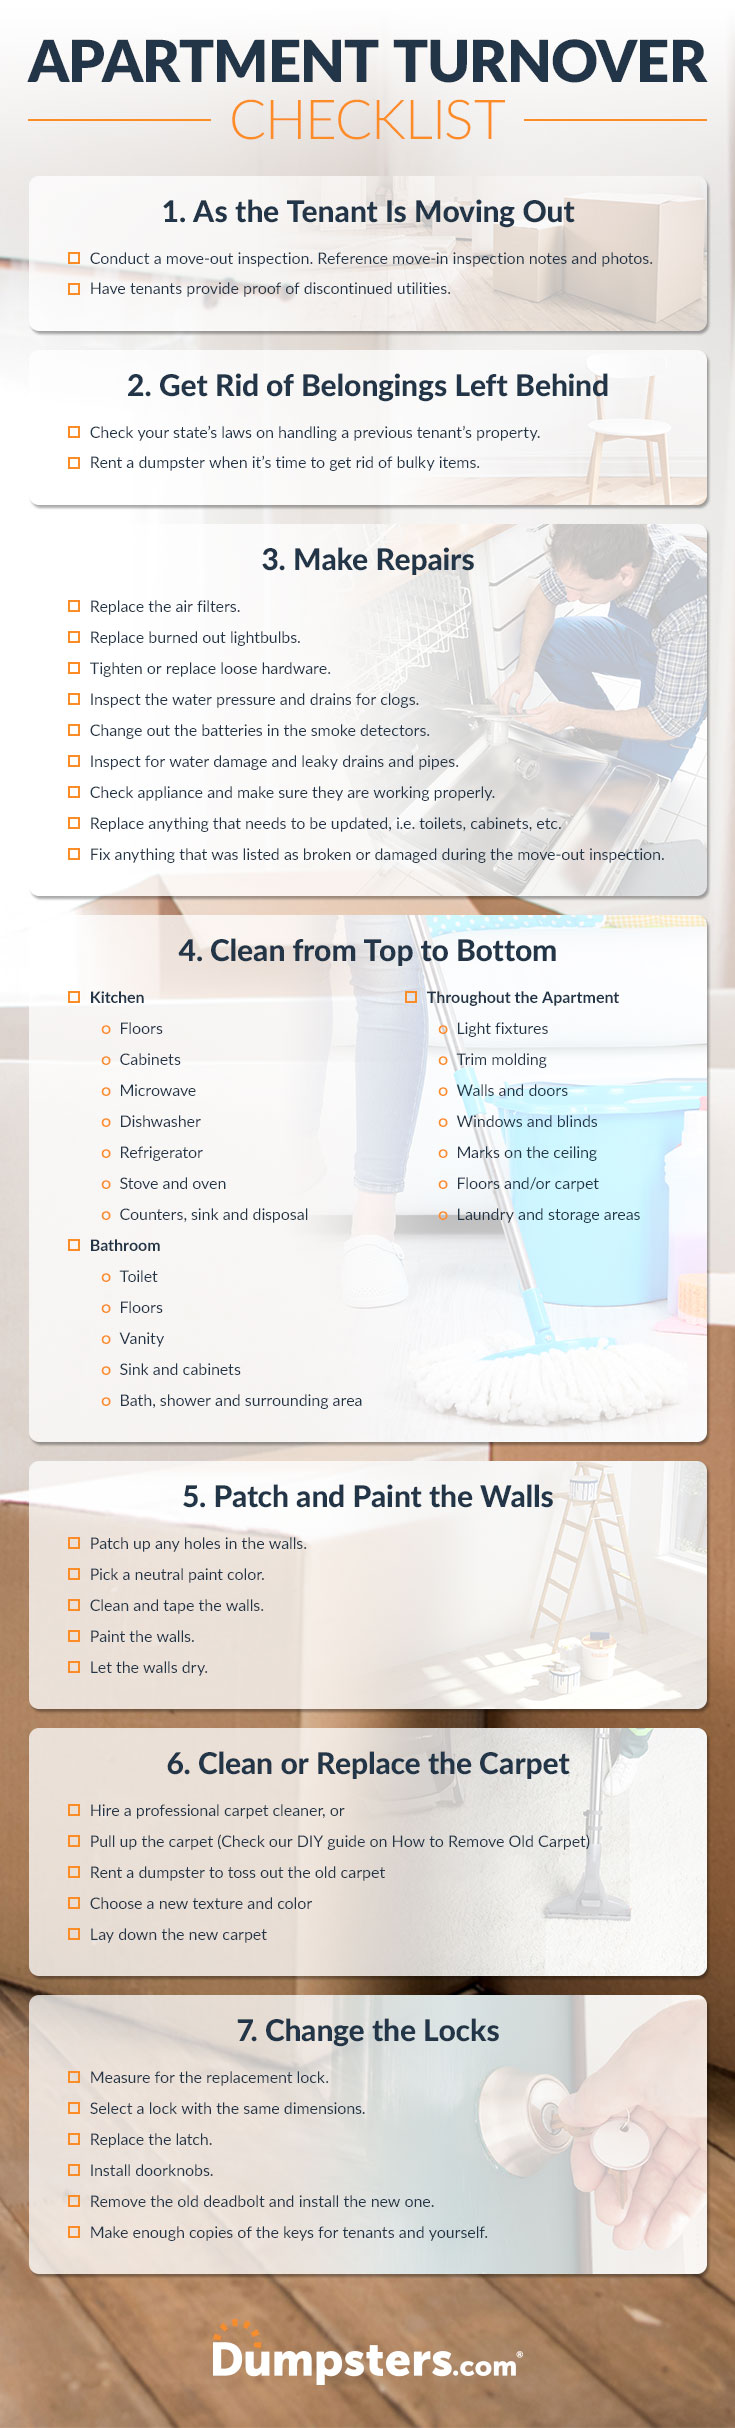 A Landlord Apartment Turnover Cleaning Checklist | Dumpsters.com